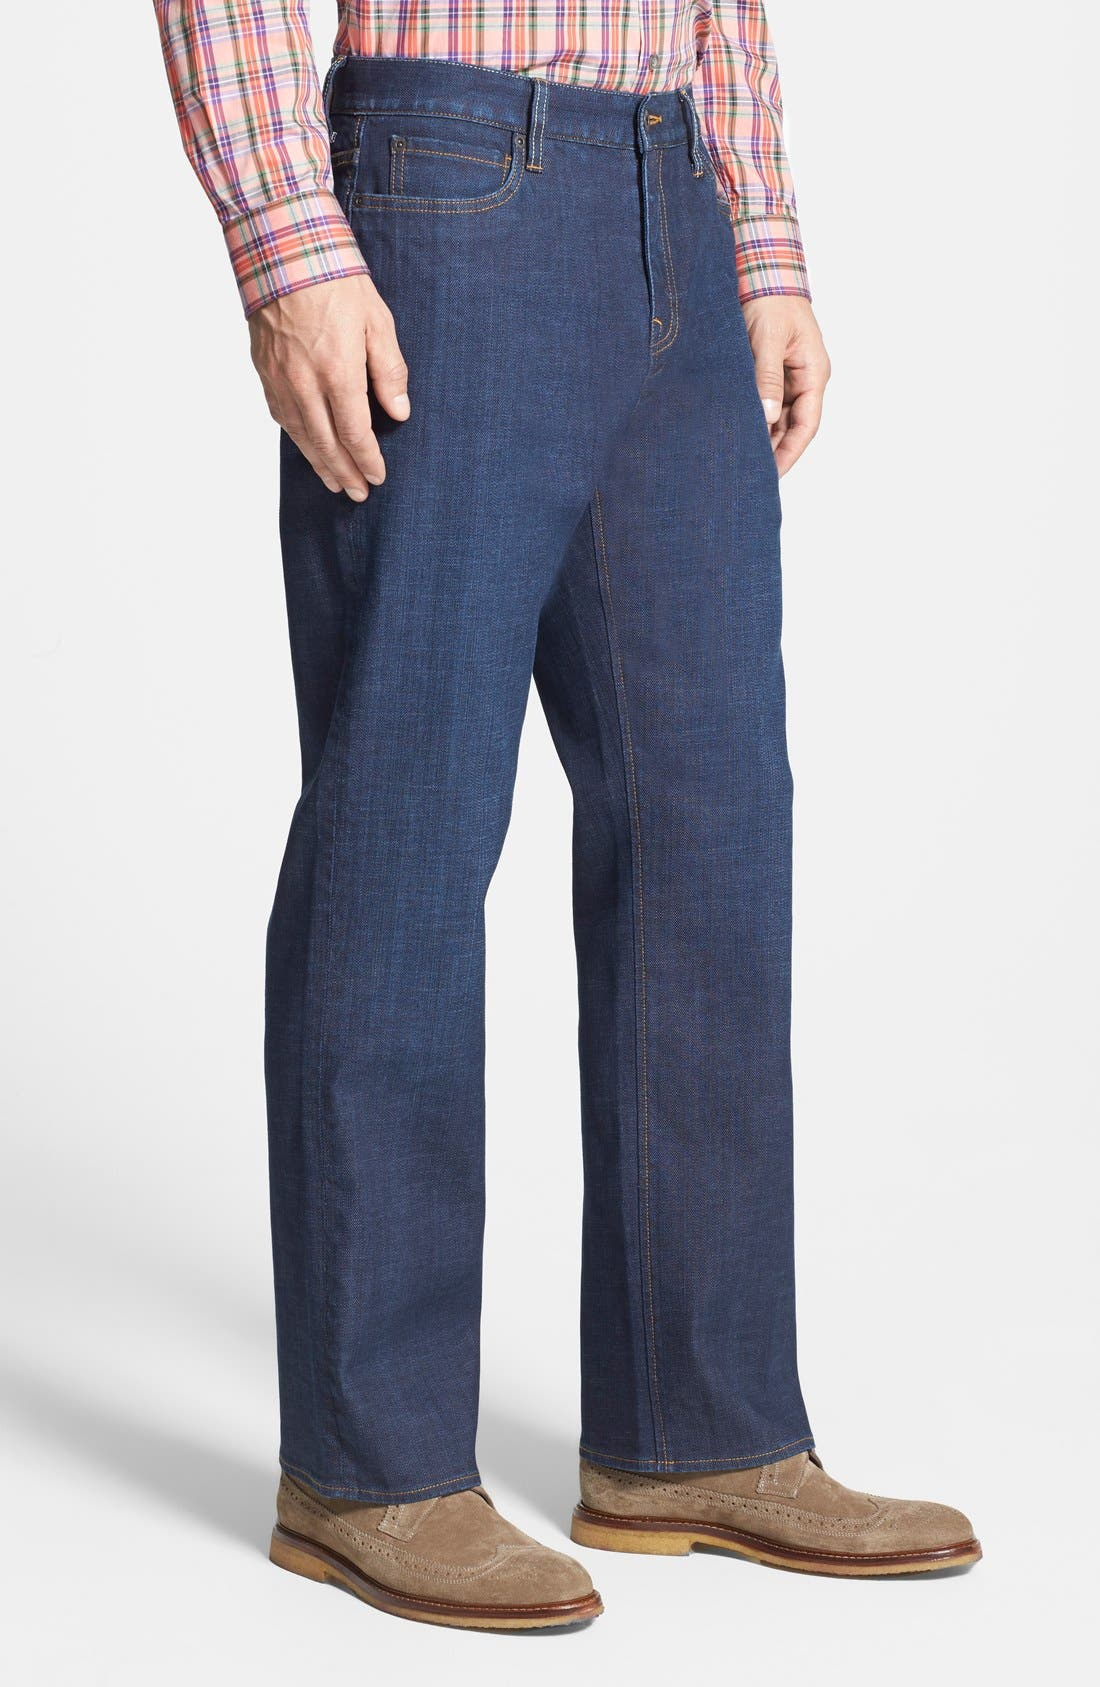 Greenwood Relaxed Fit Jeans,                             Alternate thumbnail 3, color,                             Venice Blue